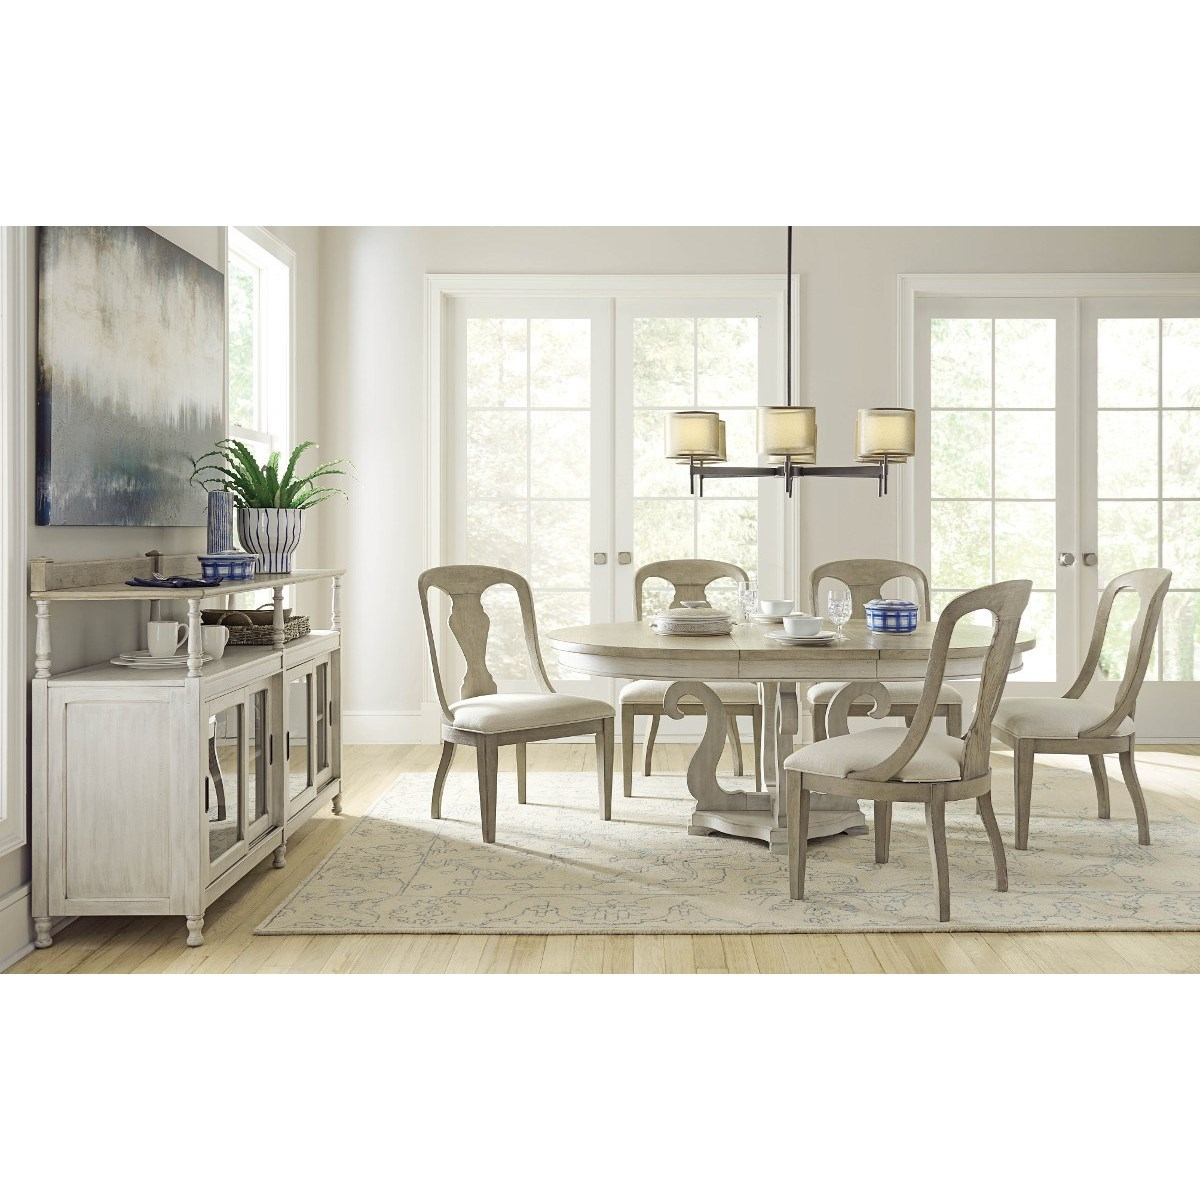 American Drew Dining Room Furniture: American Drew Litchfield Formal Dining Room Group